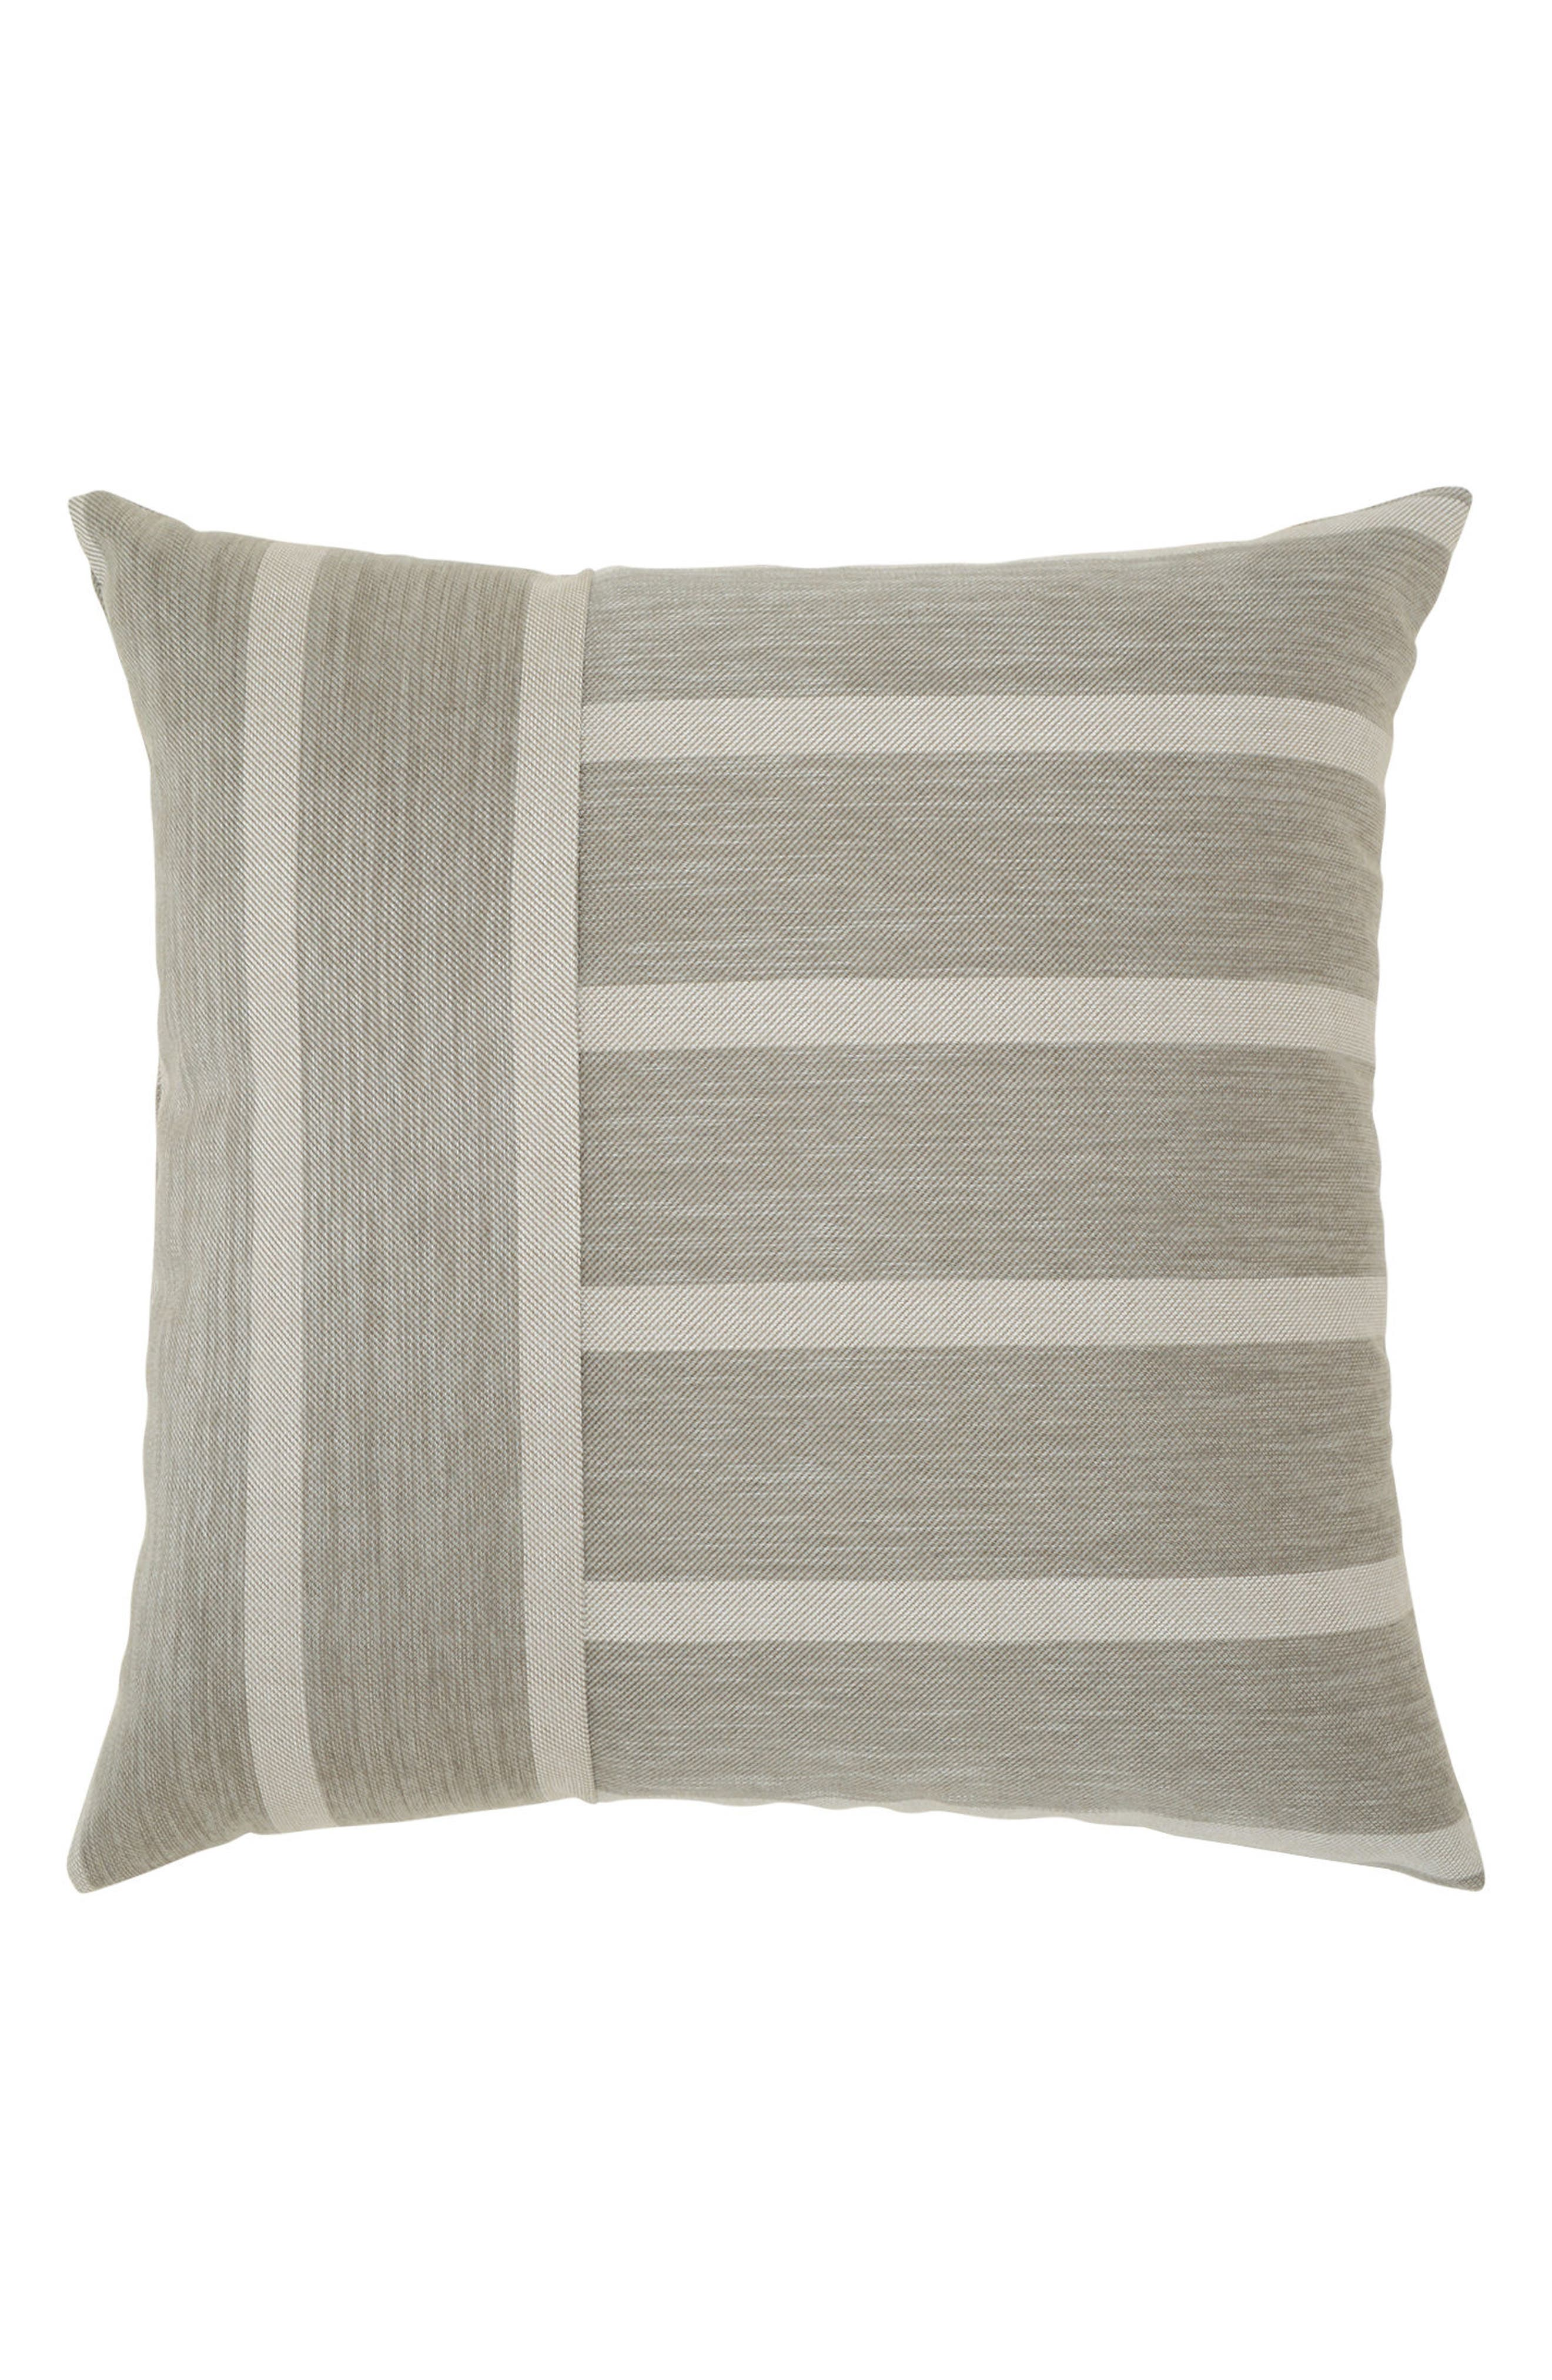 Sparkle Stripe Indoor/Outdoor Accent Pillow,                         Main,                         color, Grey